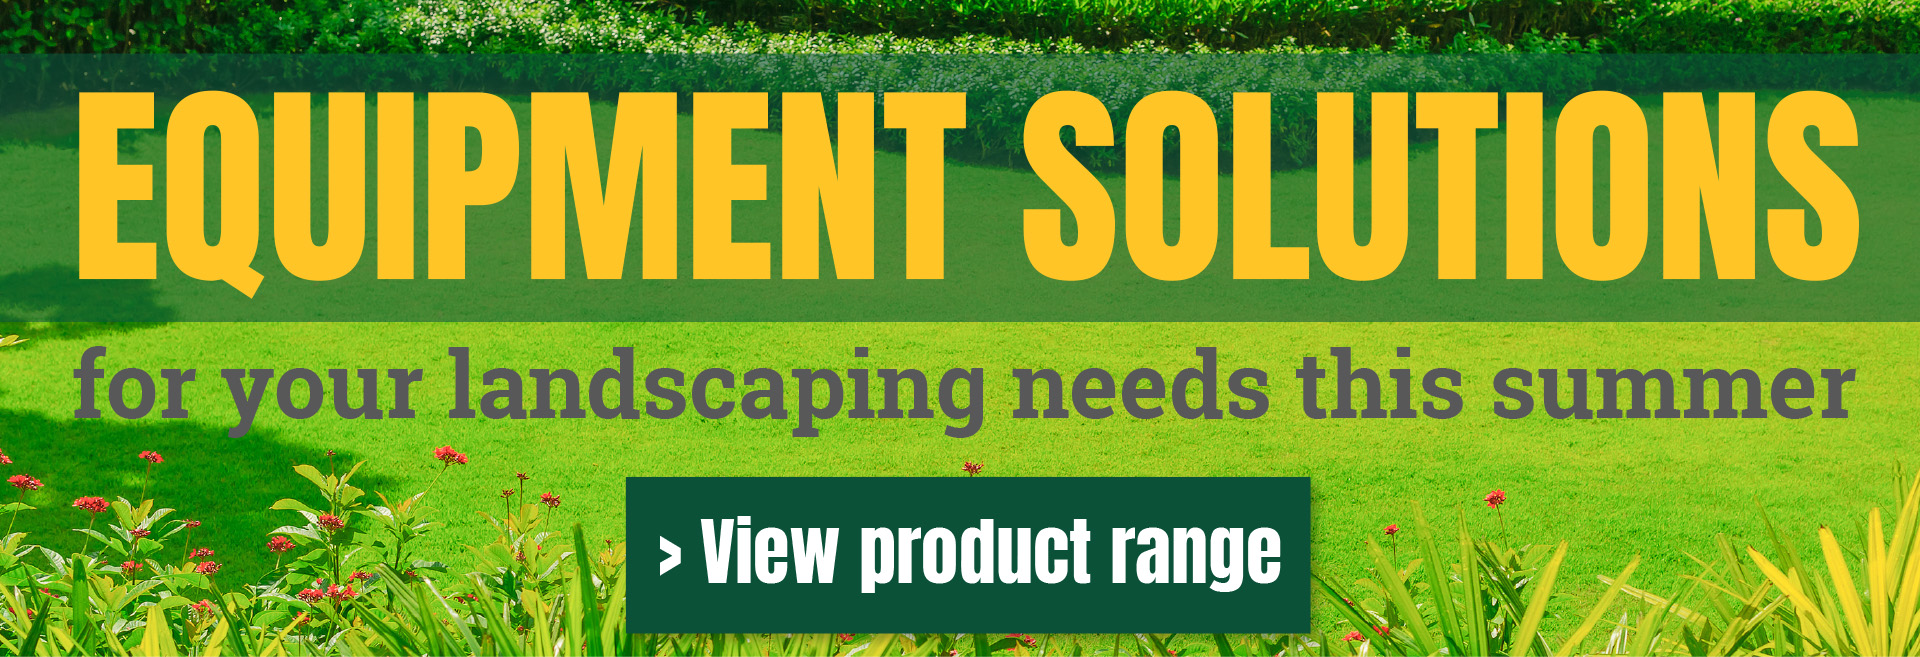 Equipment solutions for your landscaping needs